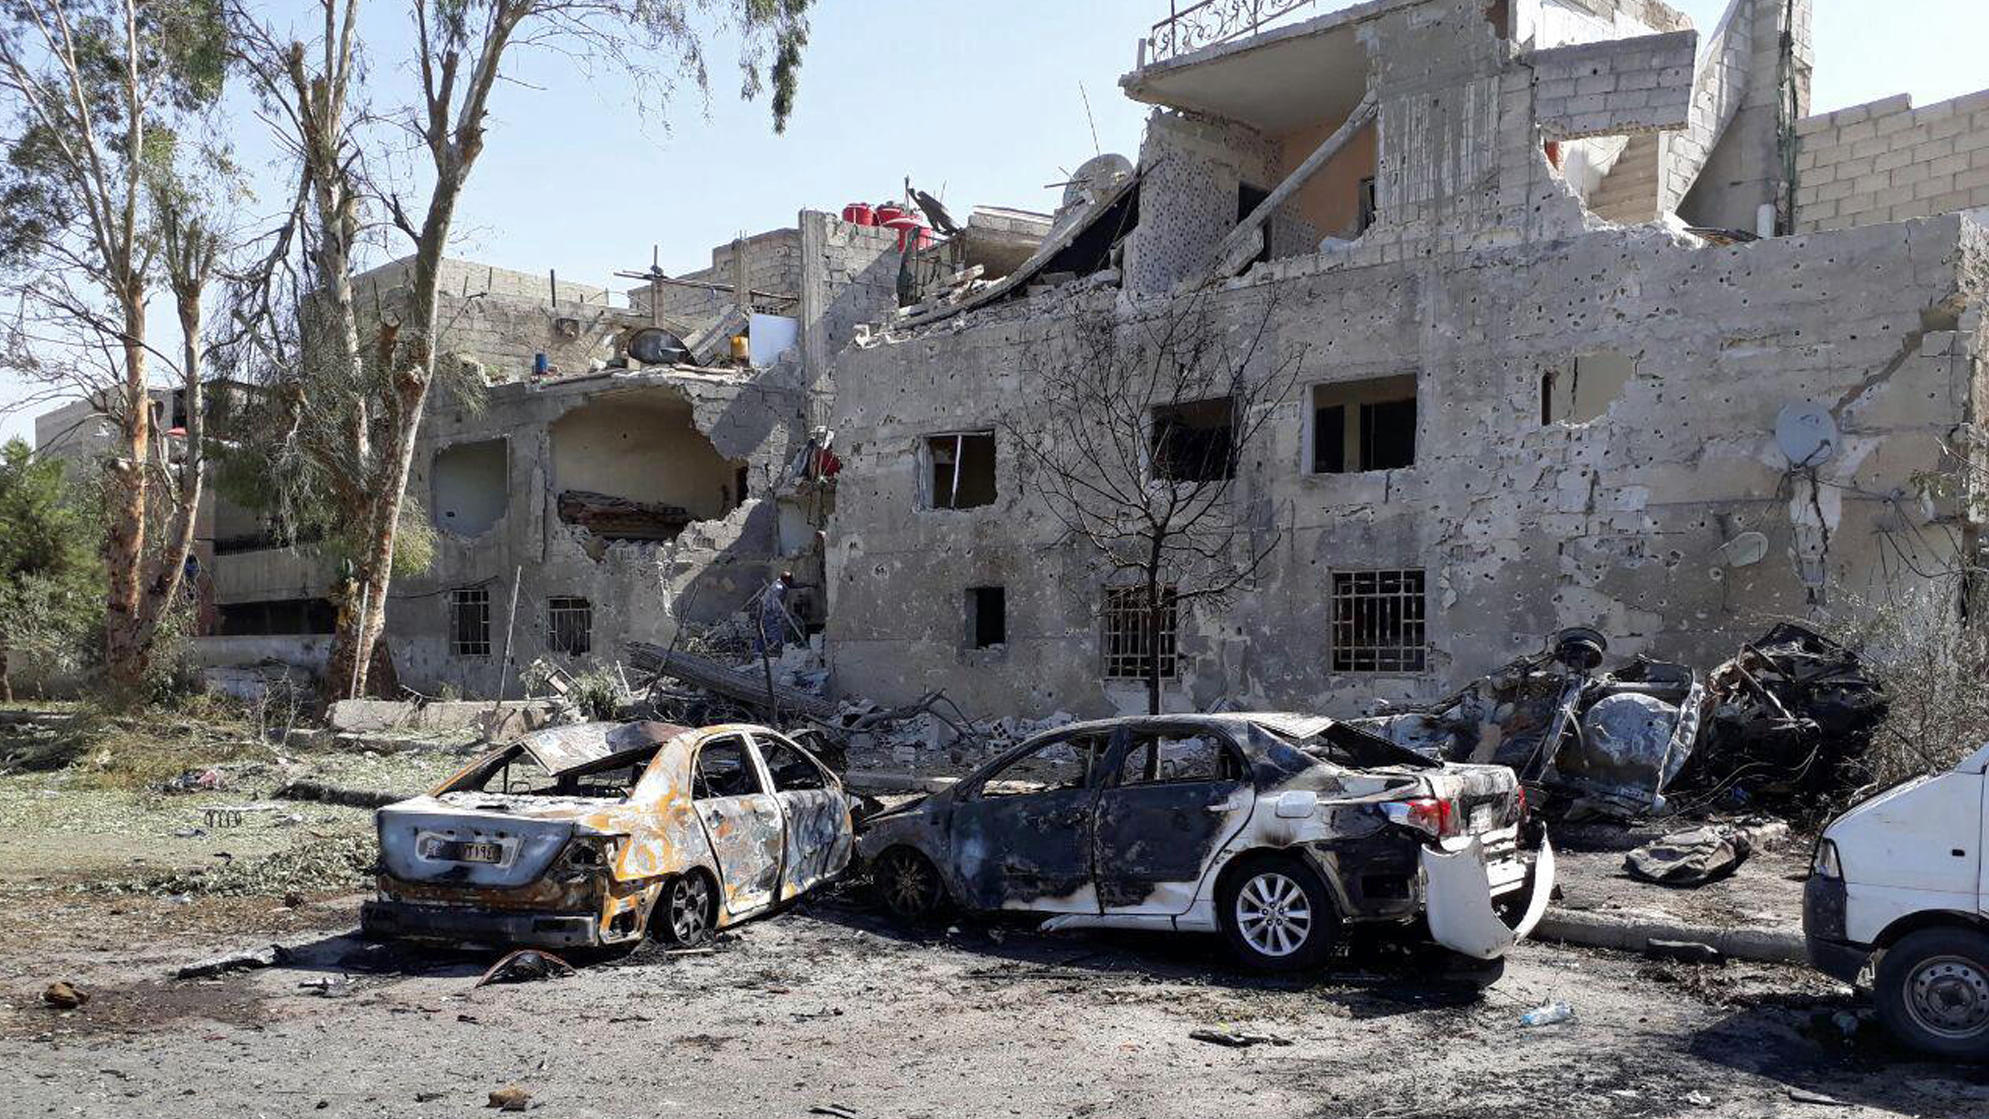 Three vehicle bombs hit Damascus, killing a number of people-state media